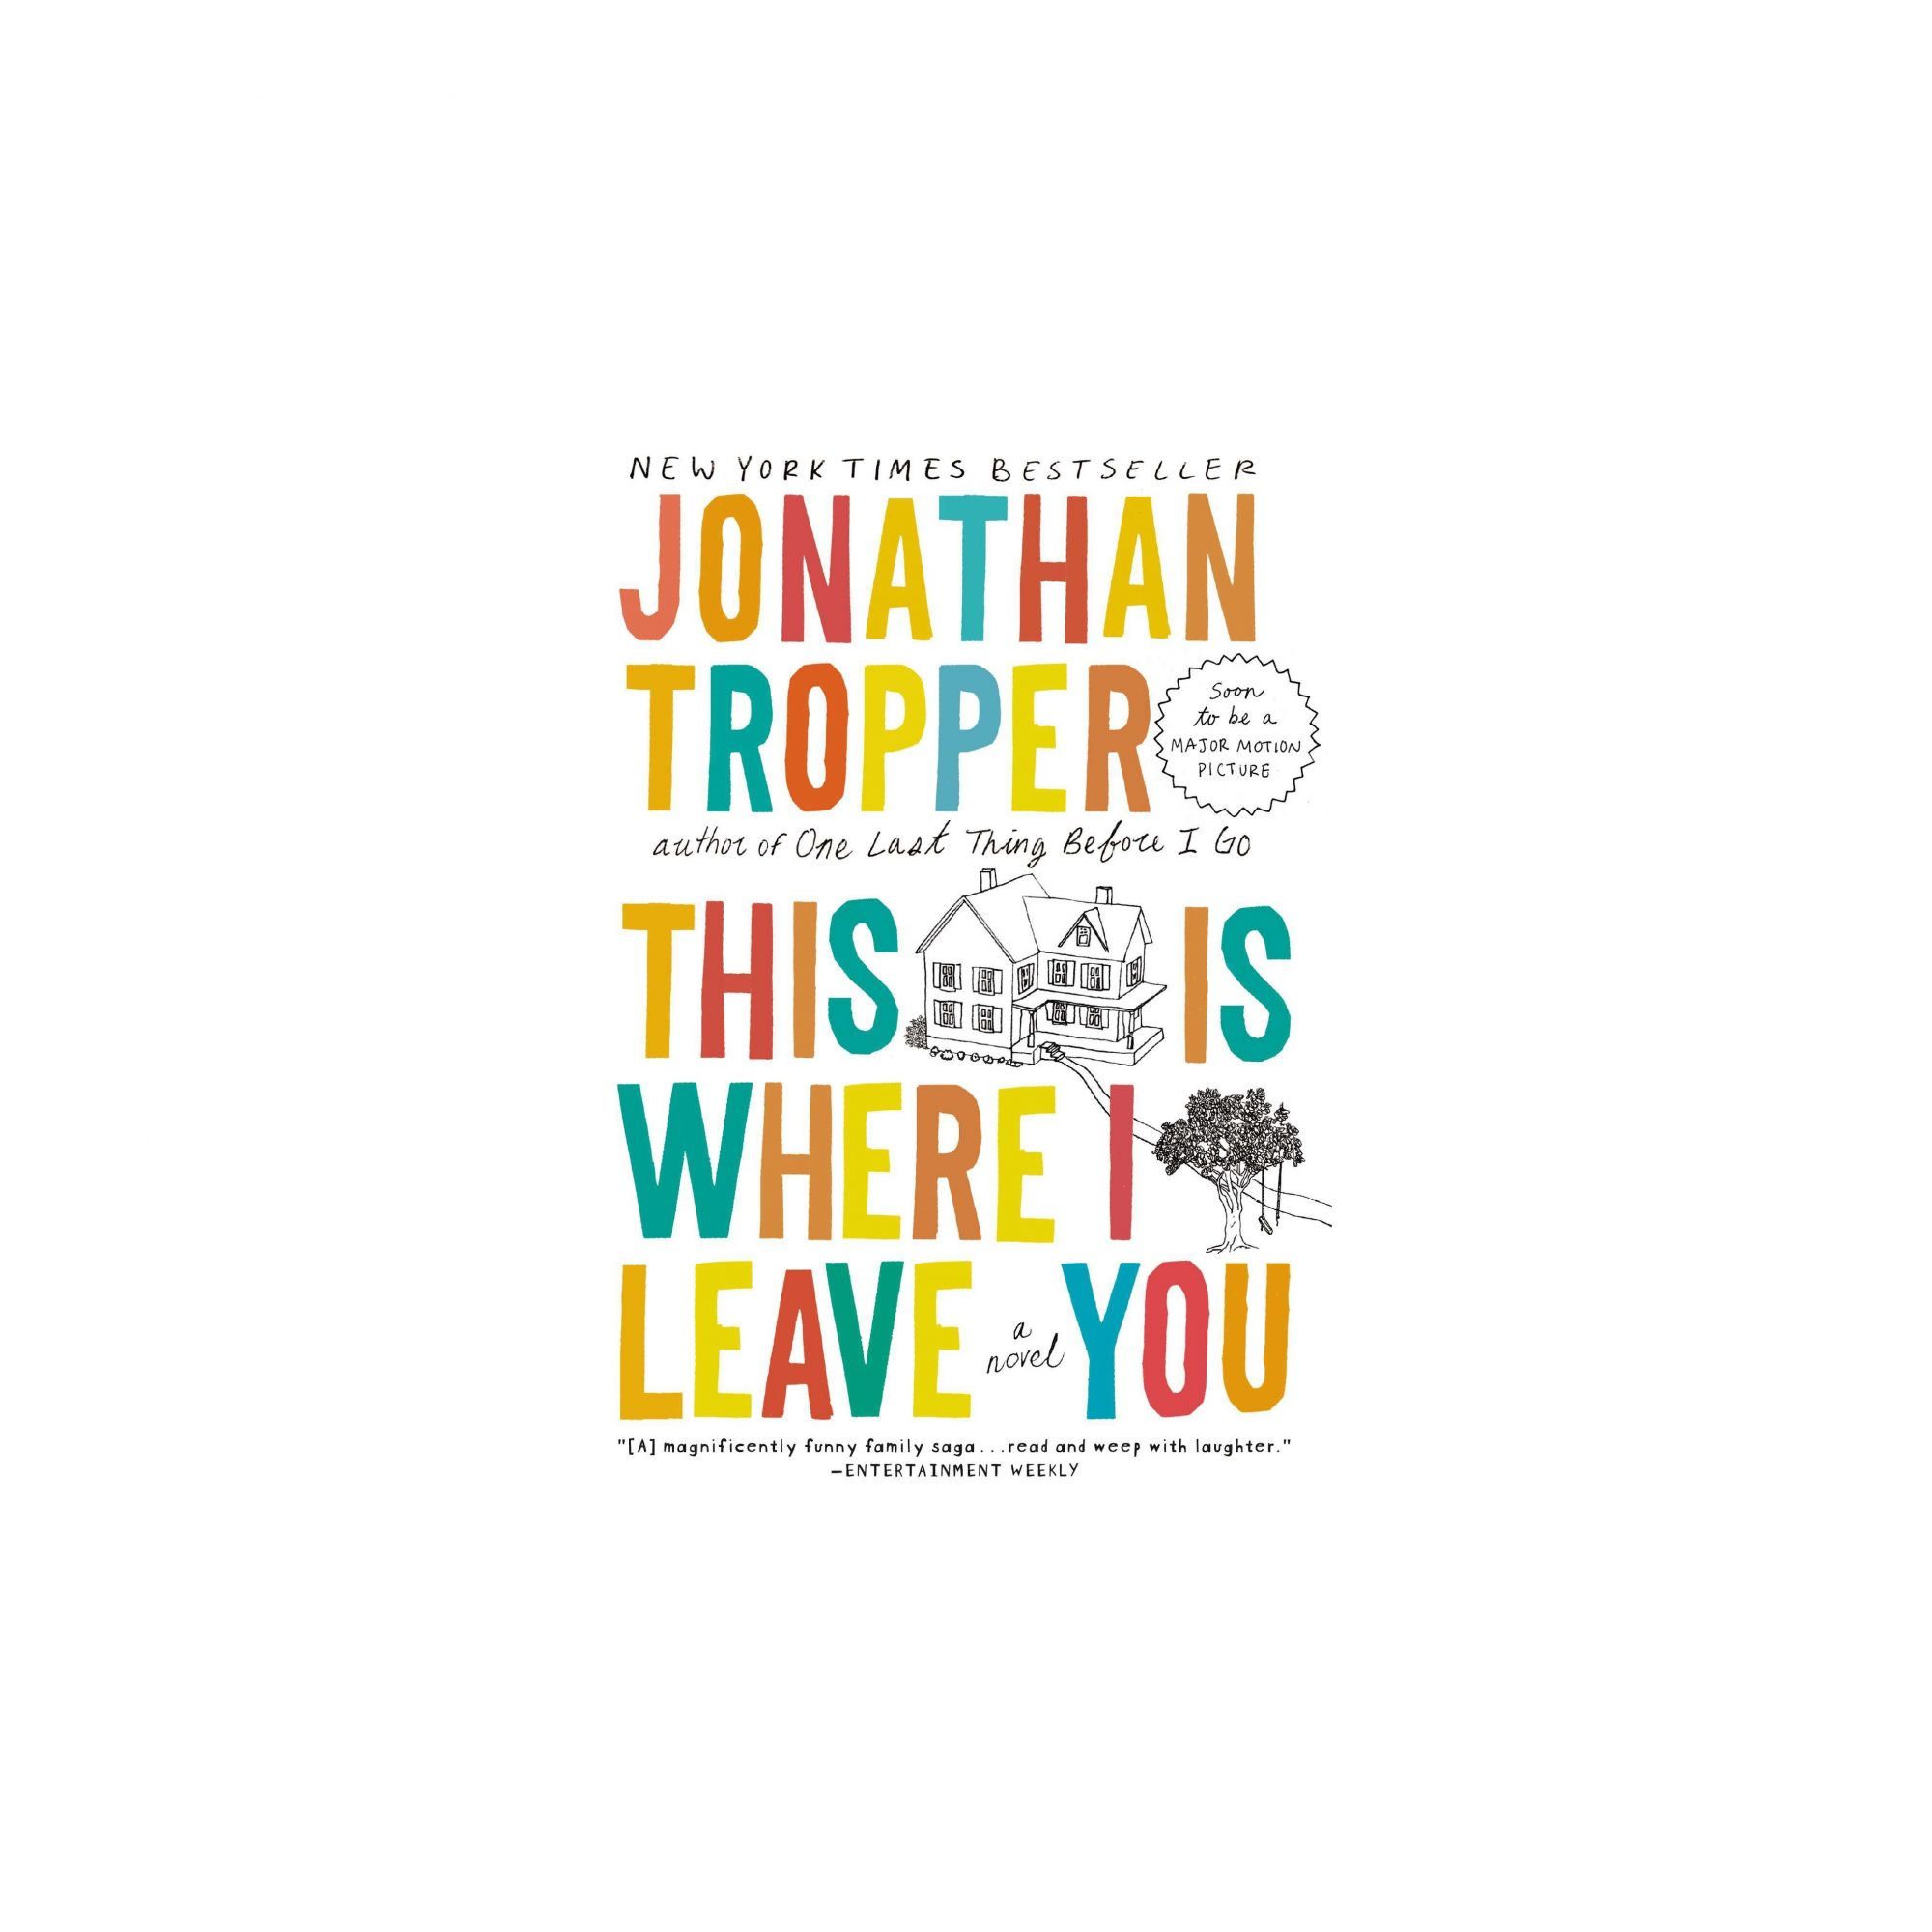 This Is Where I Leave You, by Jonathan Tropper